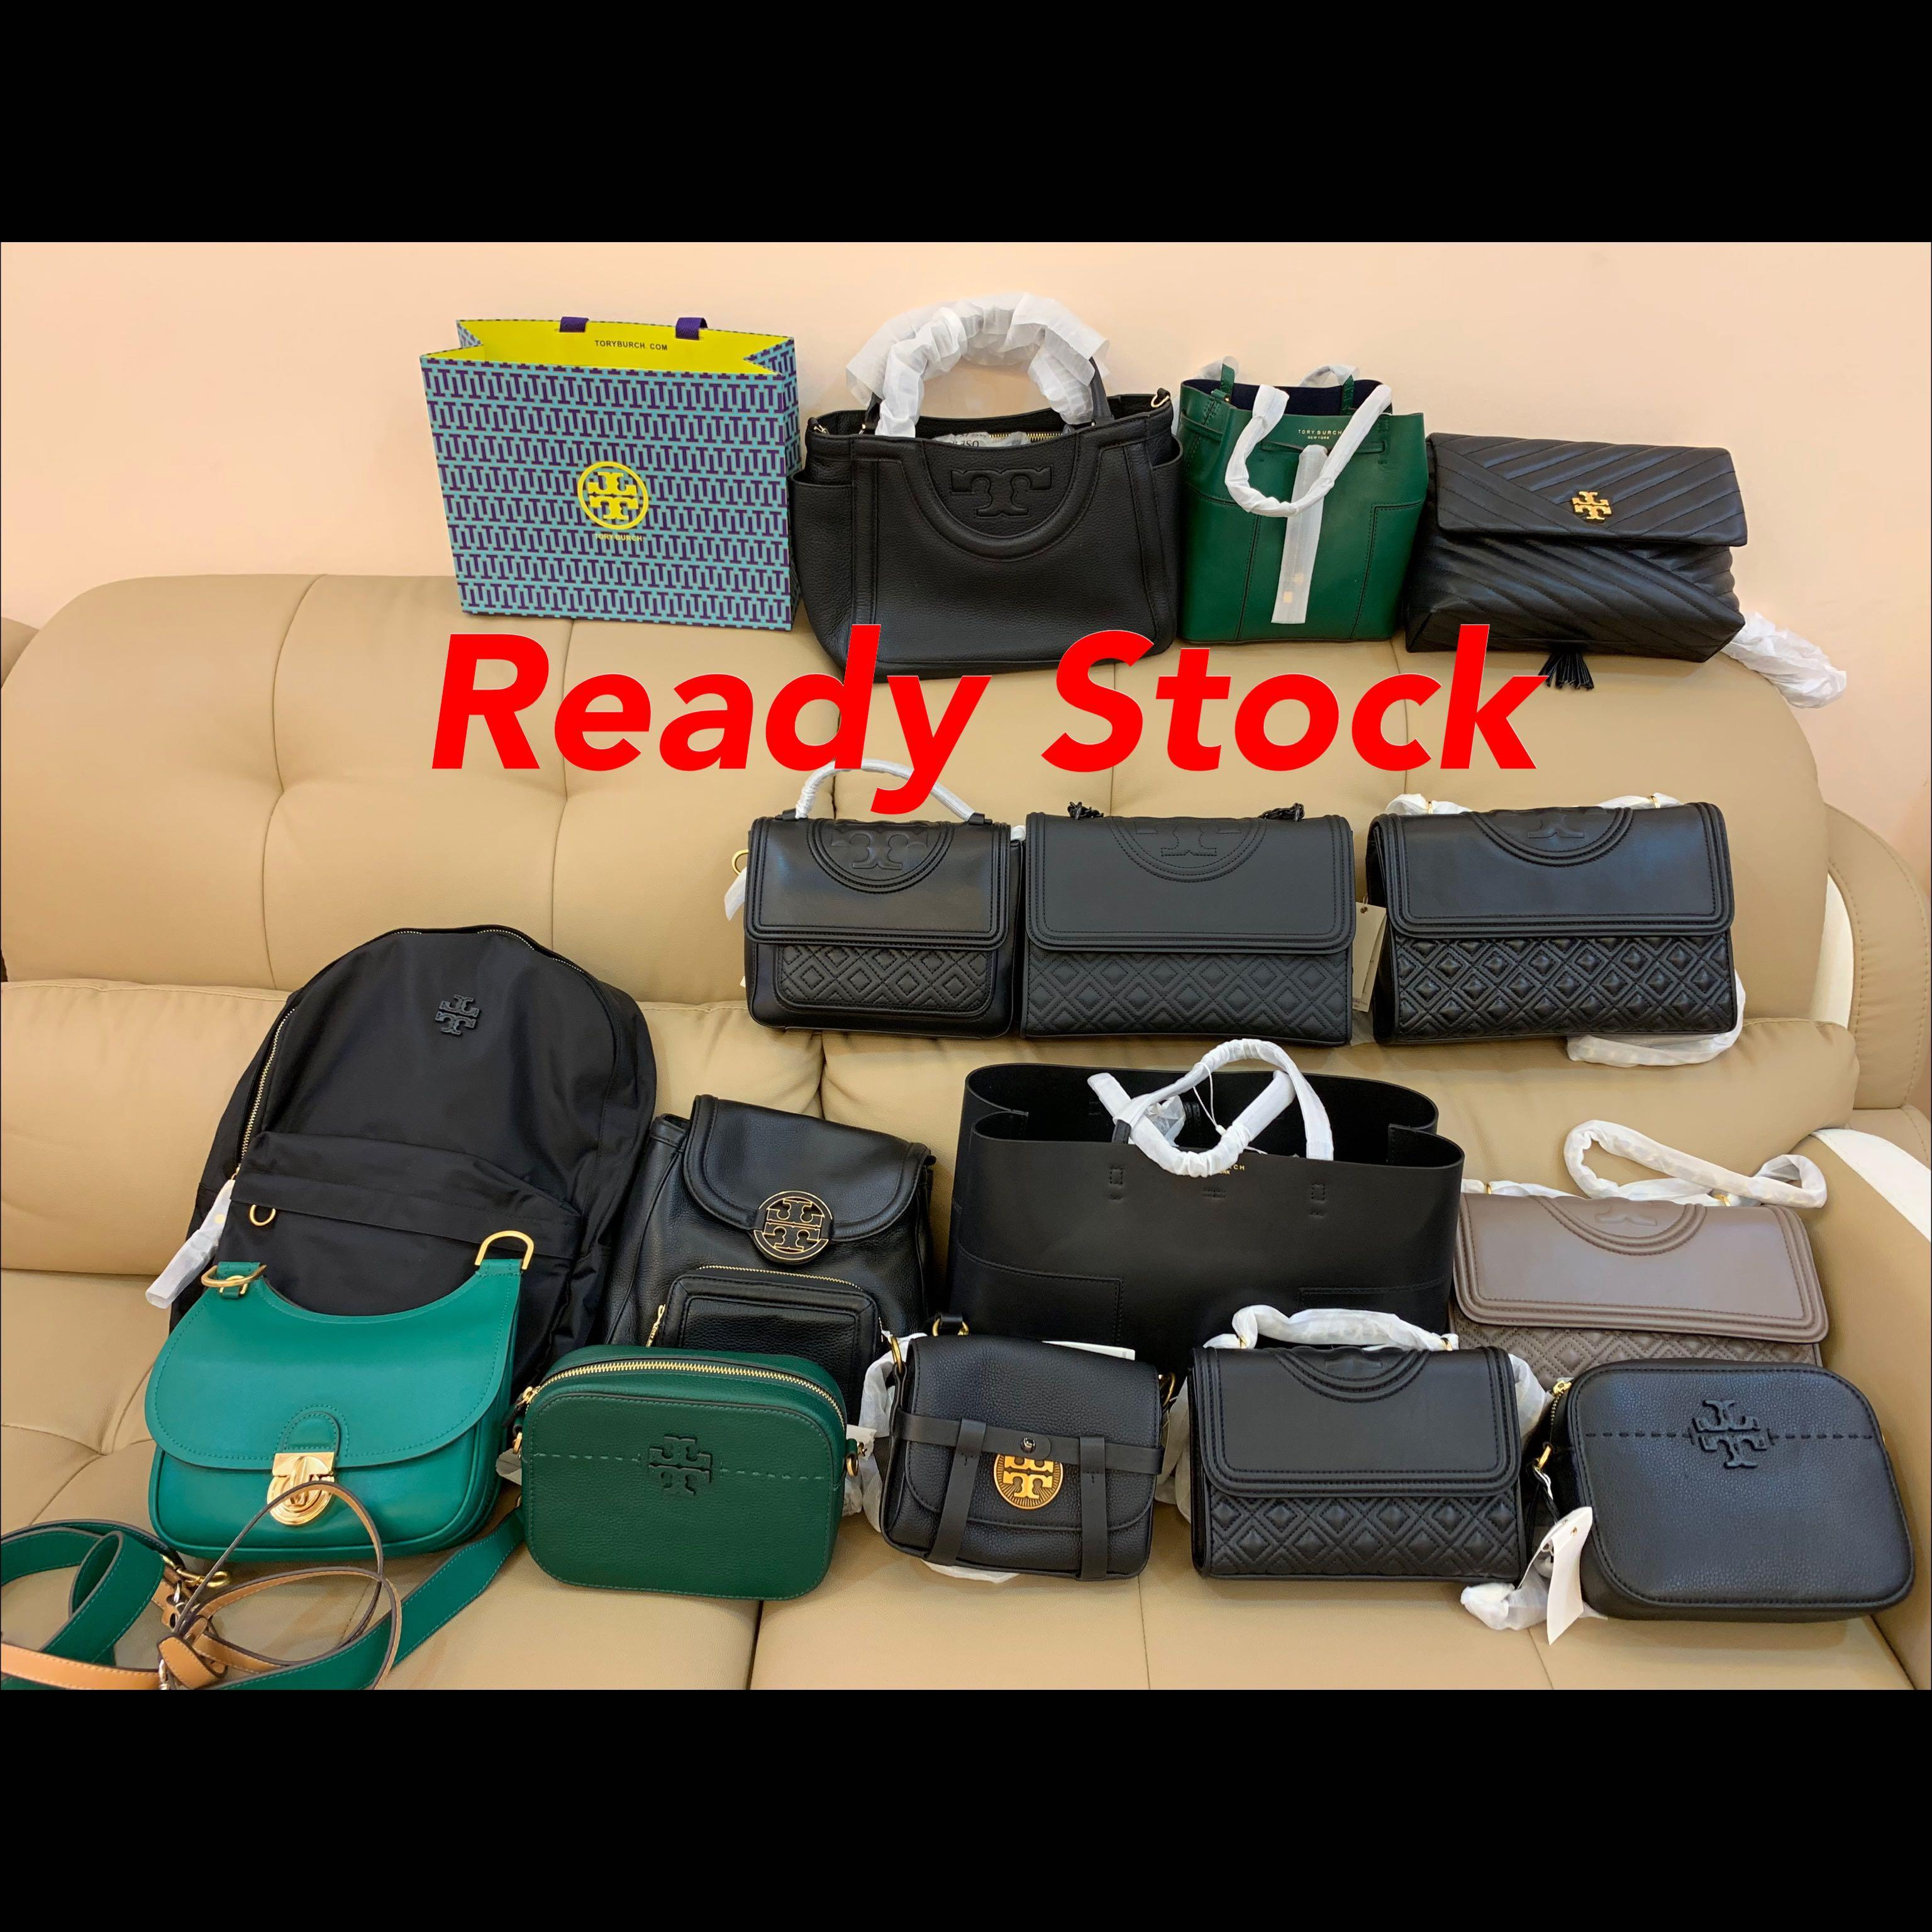 (05/05/19)Authentic Tory Burch women bag handbag backpack clutch wallet coach backpack Fleming convertibles sling bag Kate spade shopping totes ready stock listing